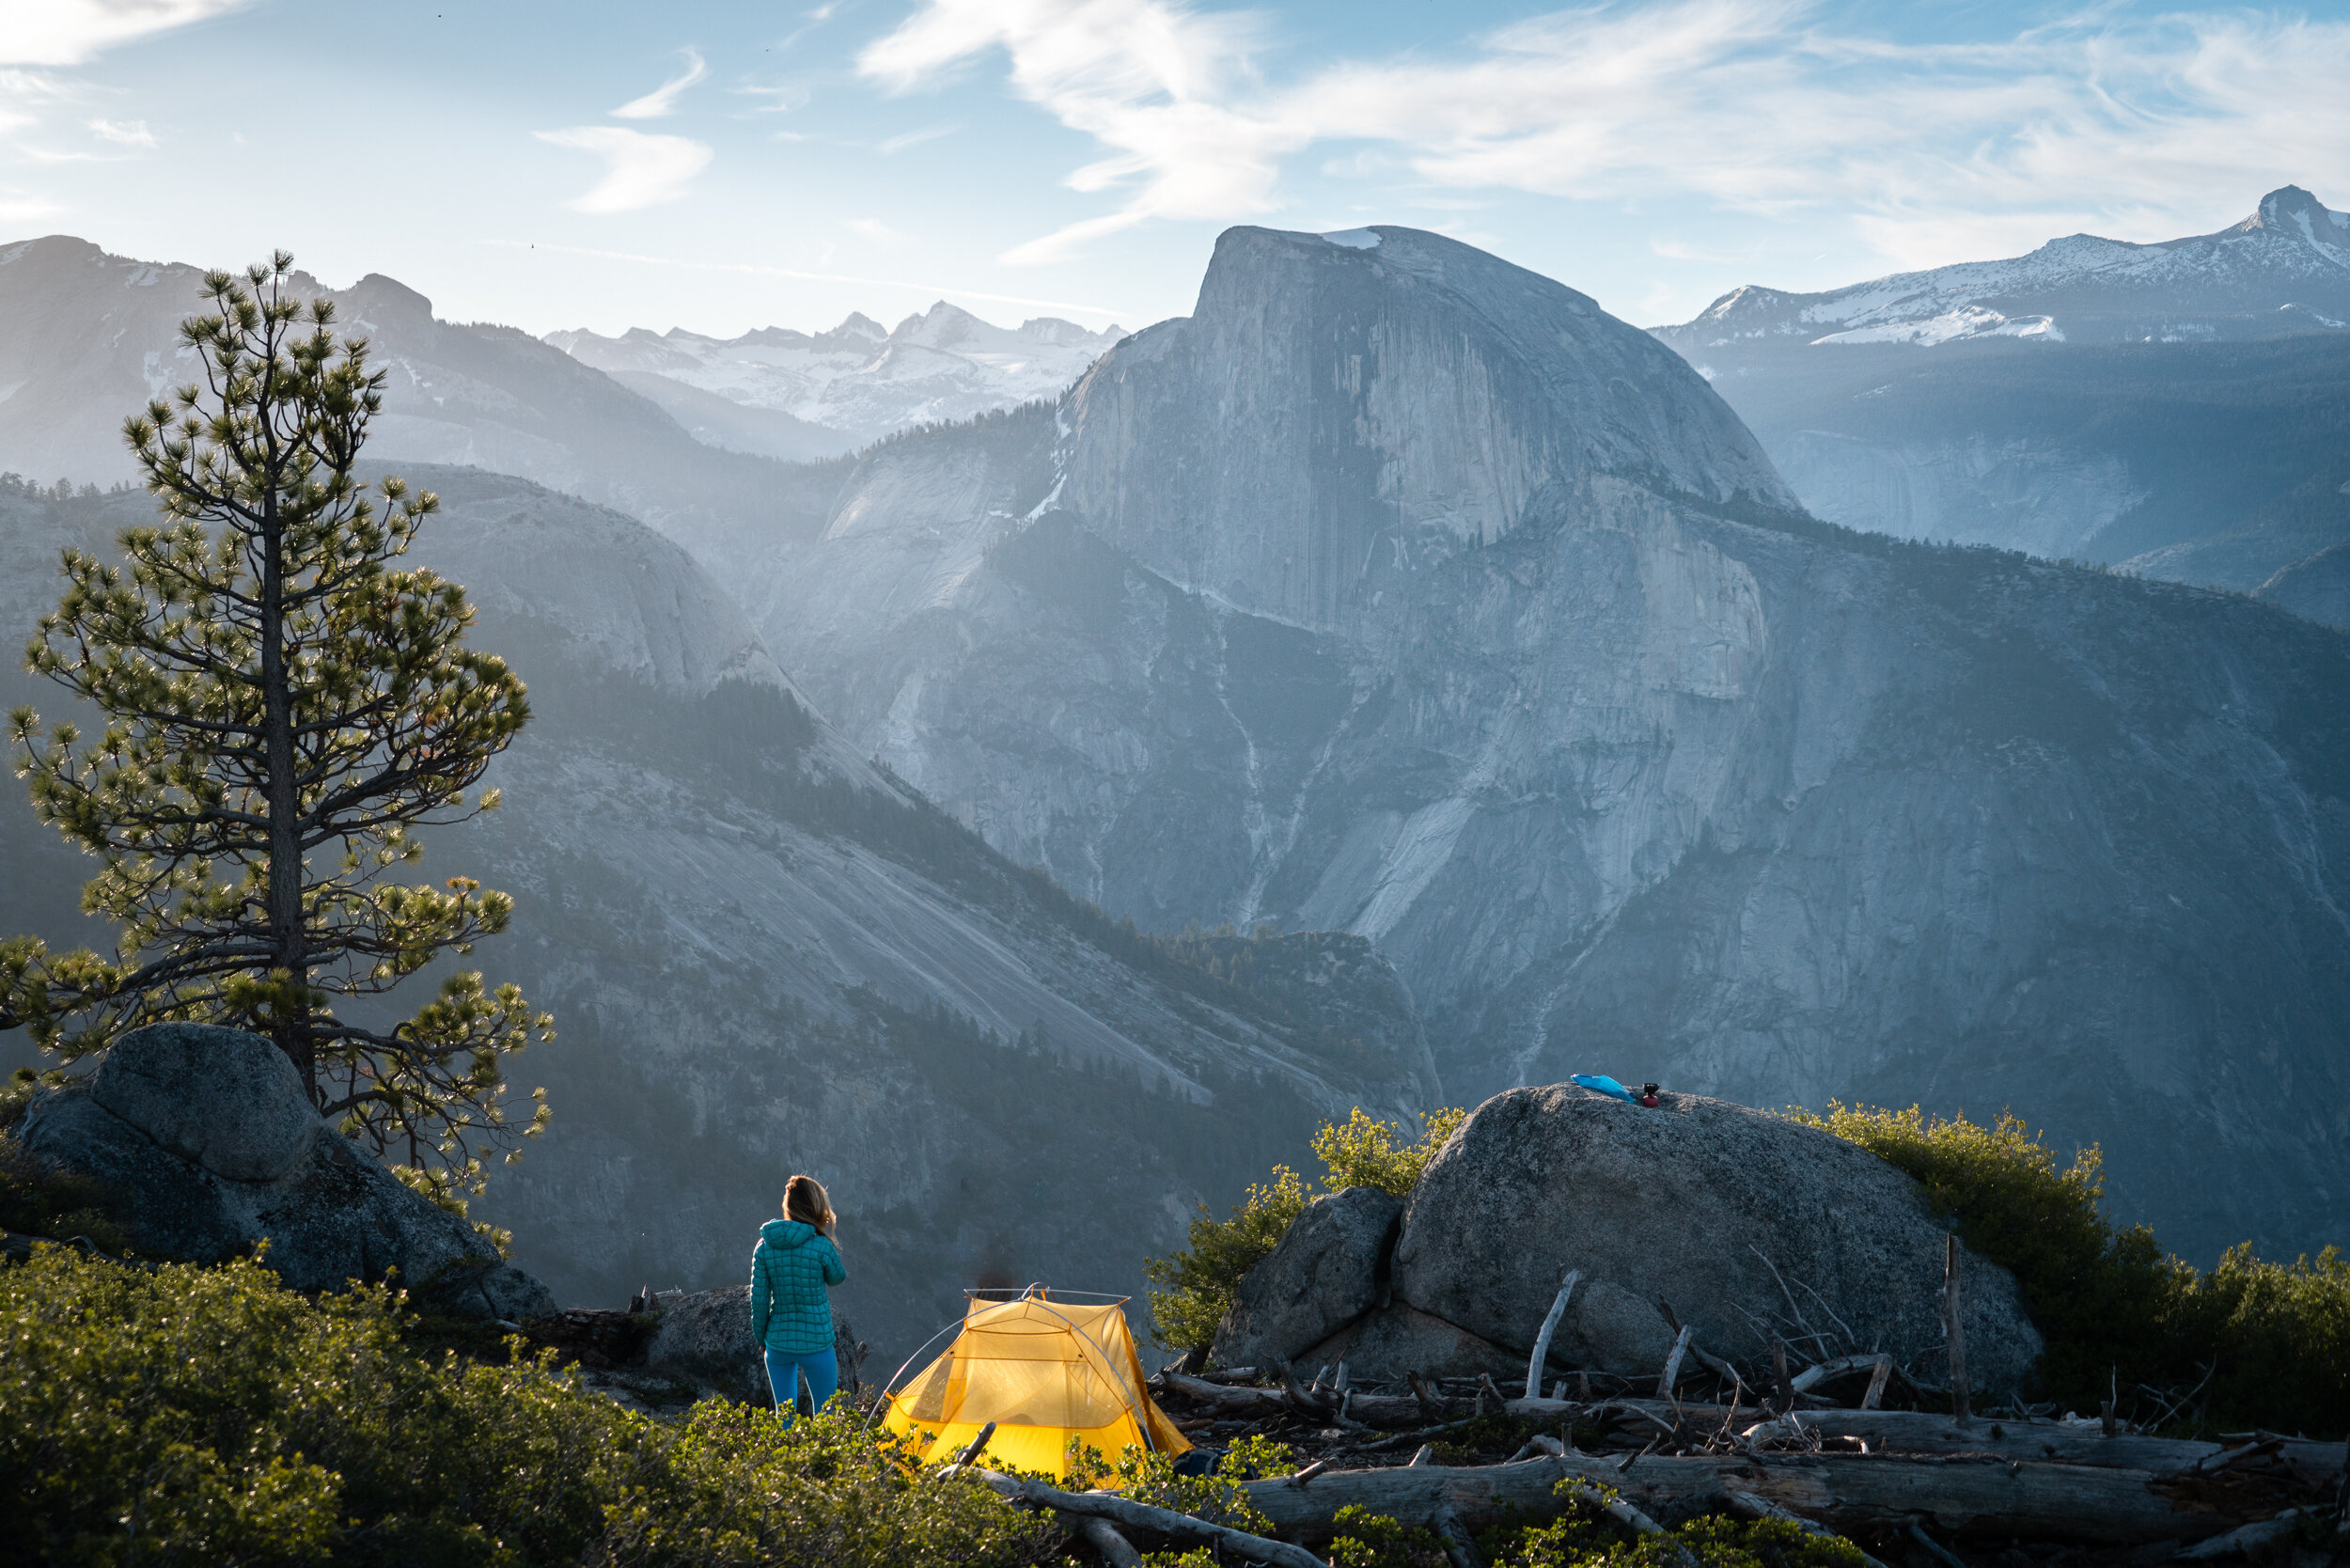 It's not hard to find a camp spot with a view at Yosemite National Park. Tent:  Big Agnes Tiger Wall UL2 Tent